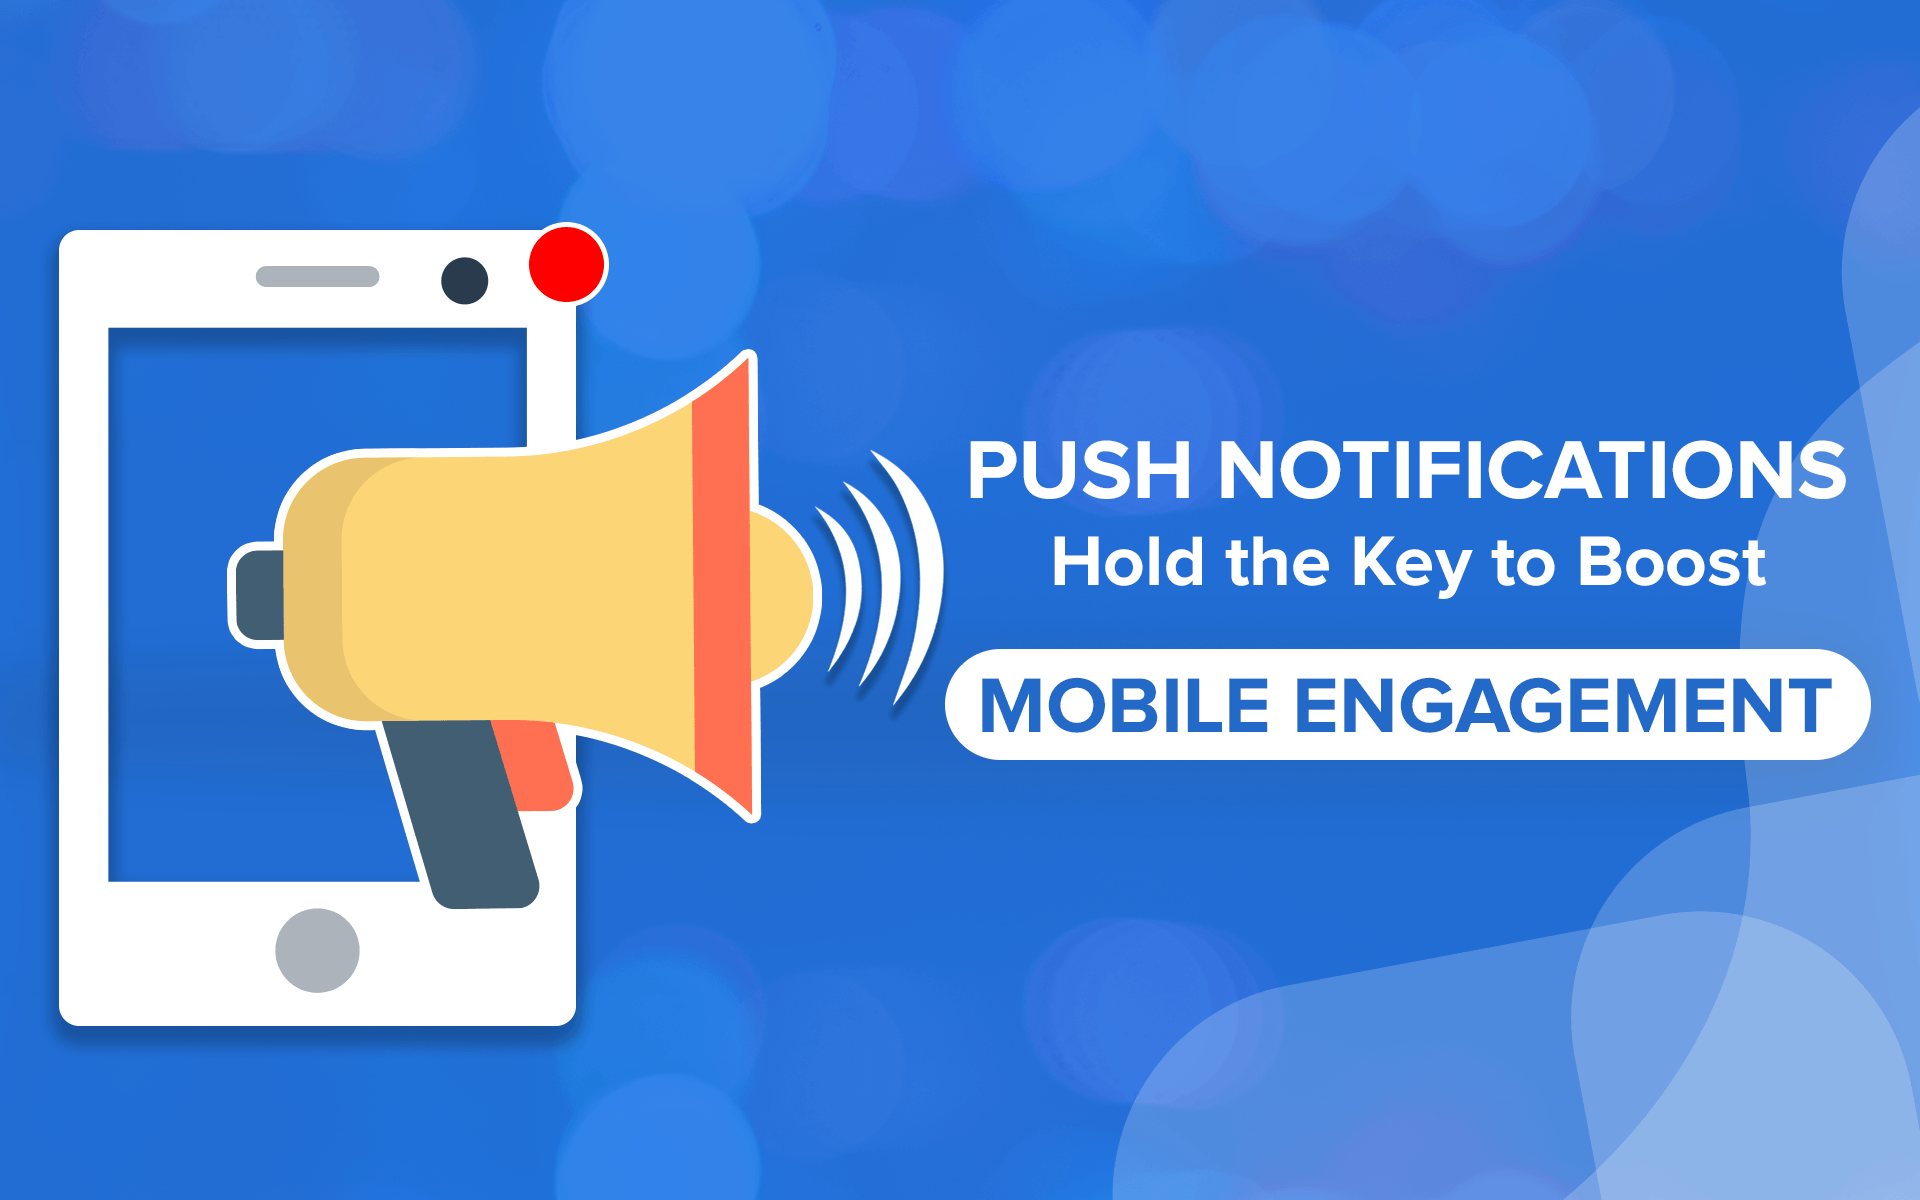 Push Notifications Hold the Key to Boost Mobile Engagement